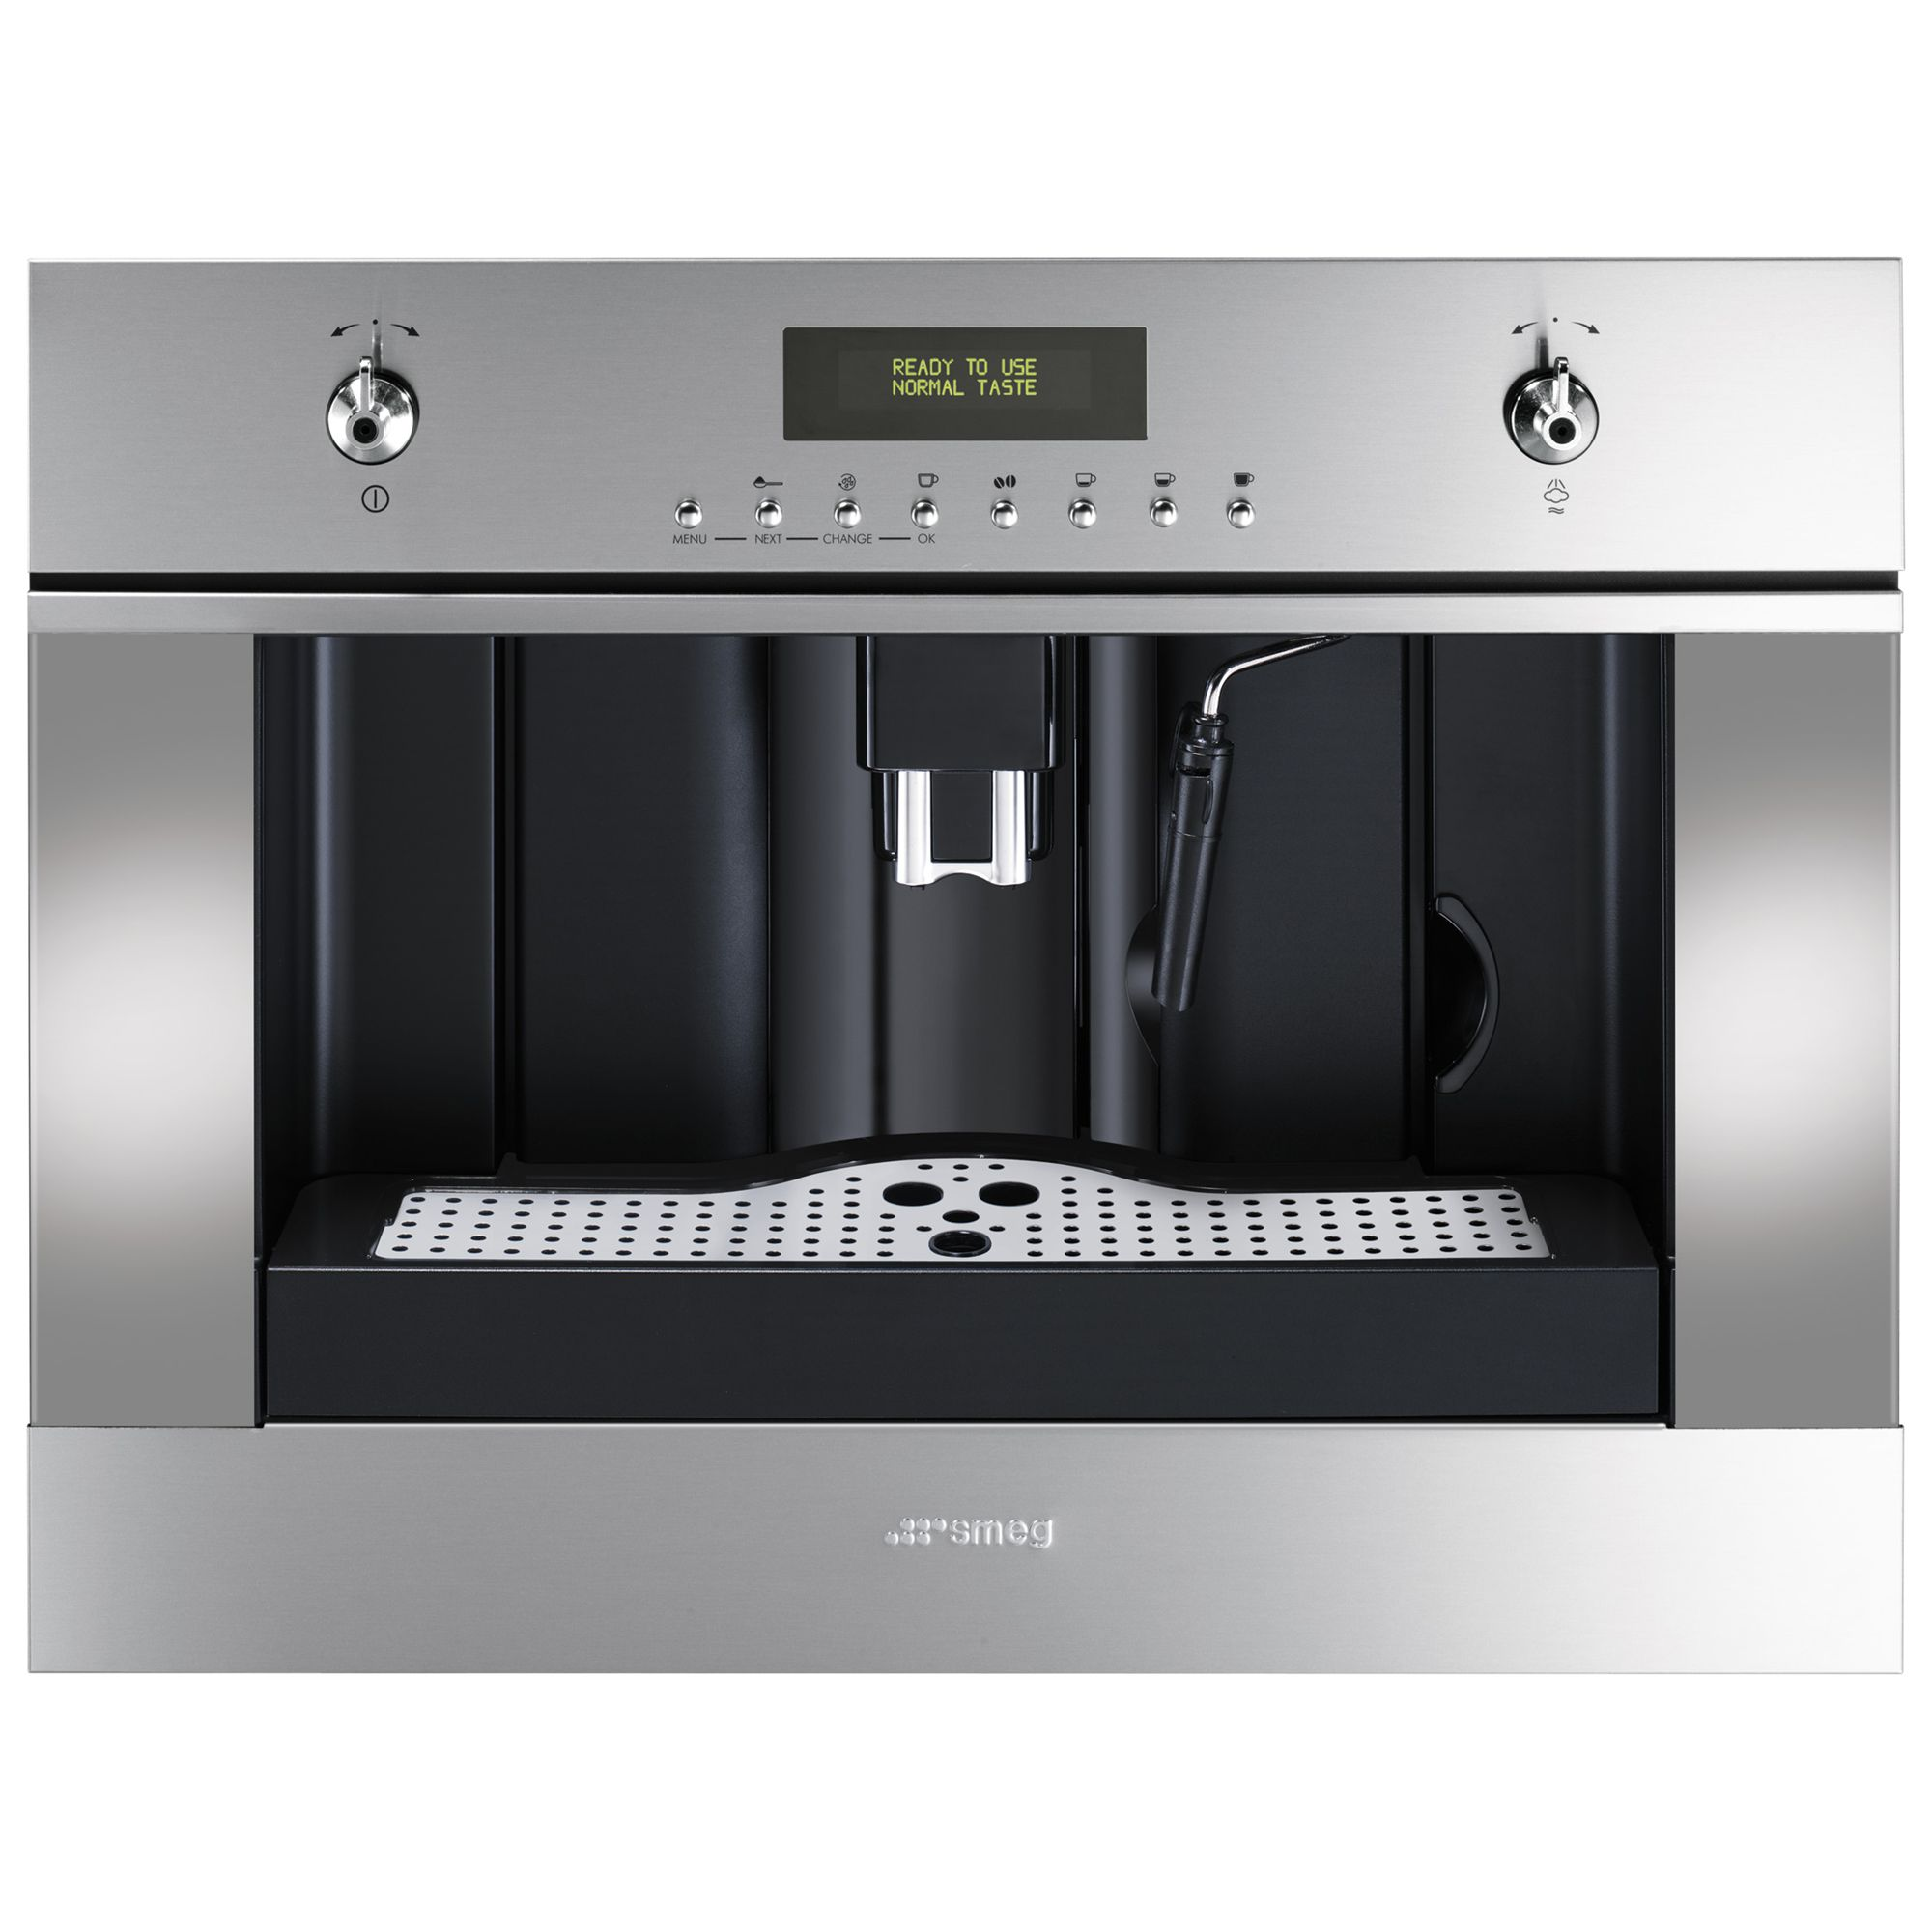 John Lewis Hob Coffee Maker : Buy Smeg CMS45X Classic Built In Coffee Machine, Stainless Steel John Lewis